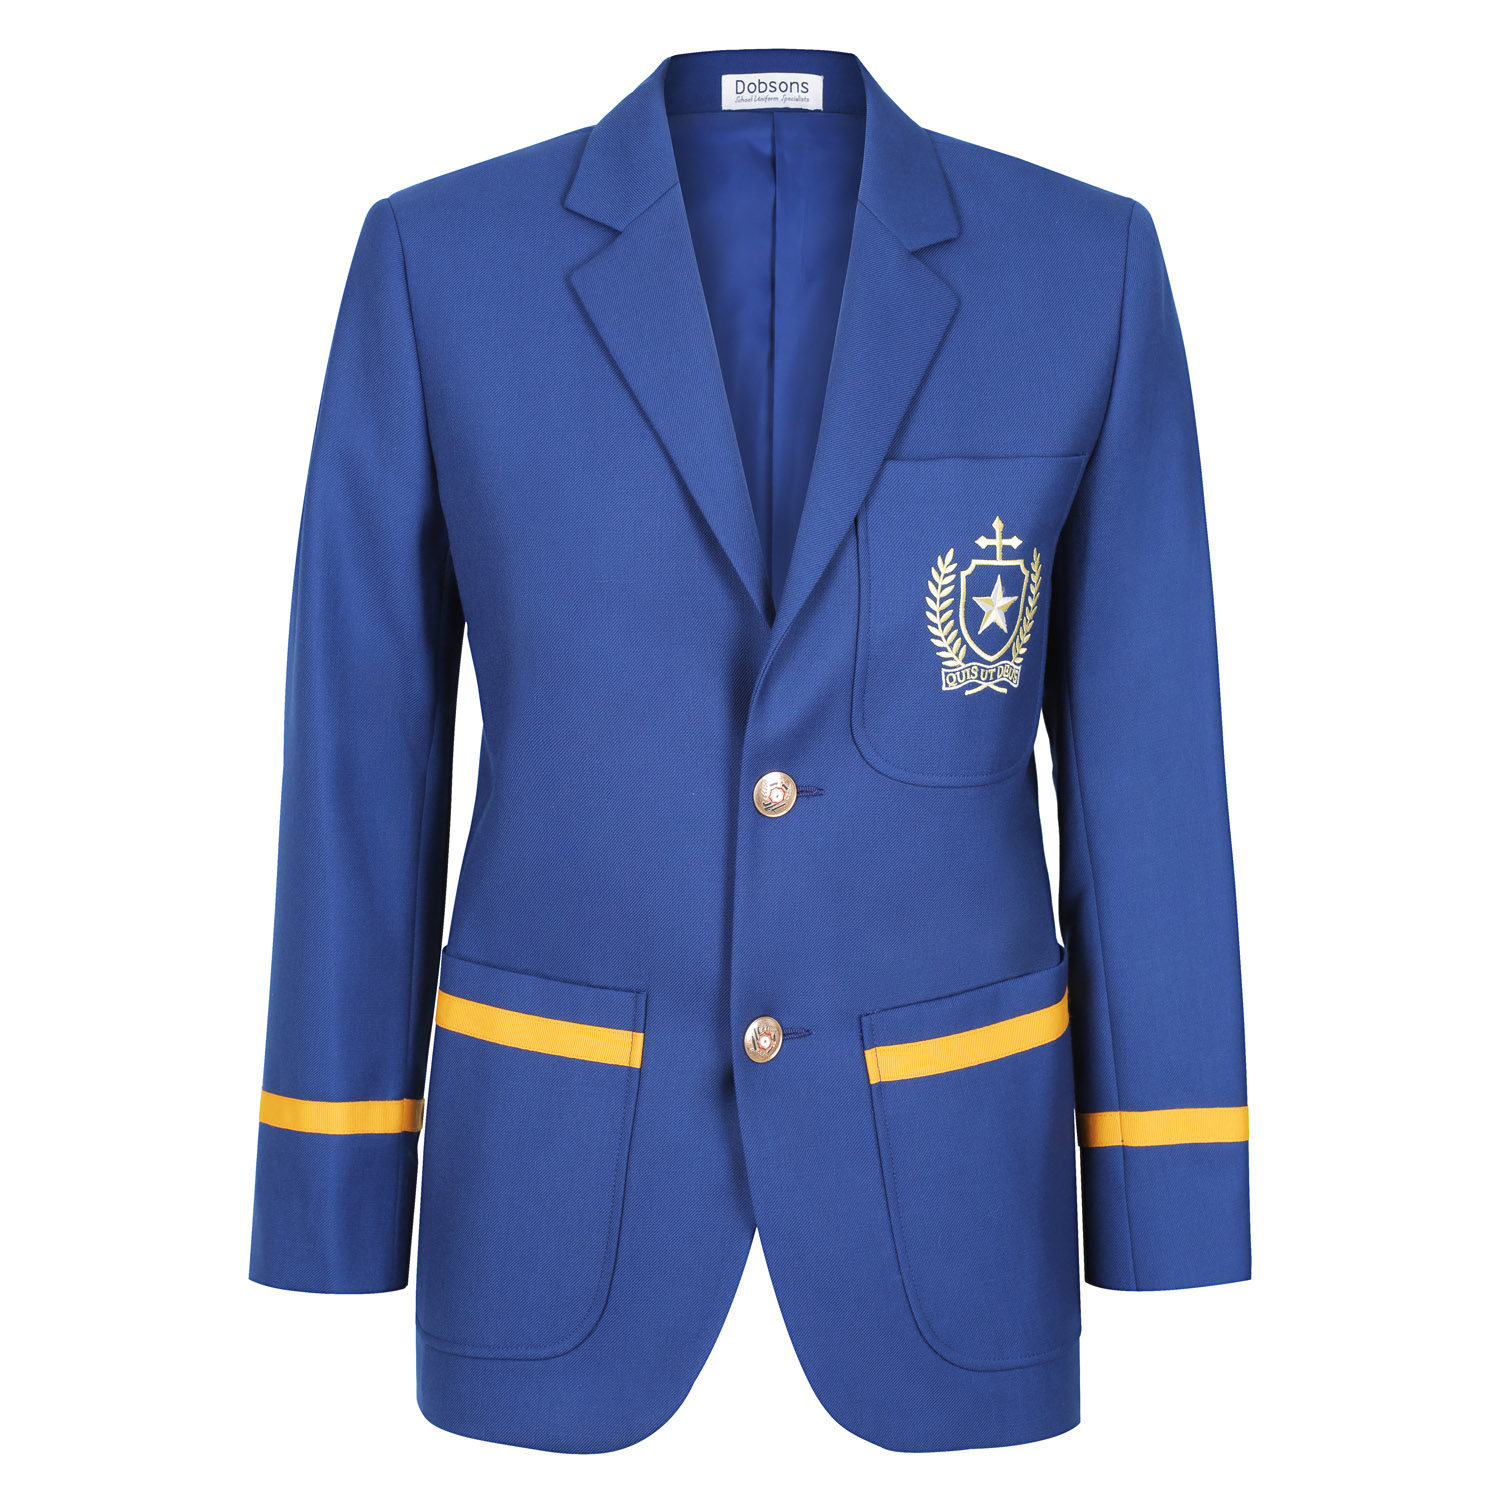 online store cb5b1 ea8c0 Fully Customised School Uniform Suppliers   Dobsons